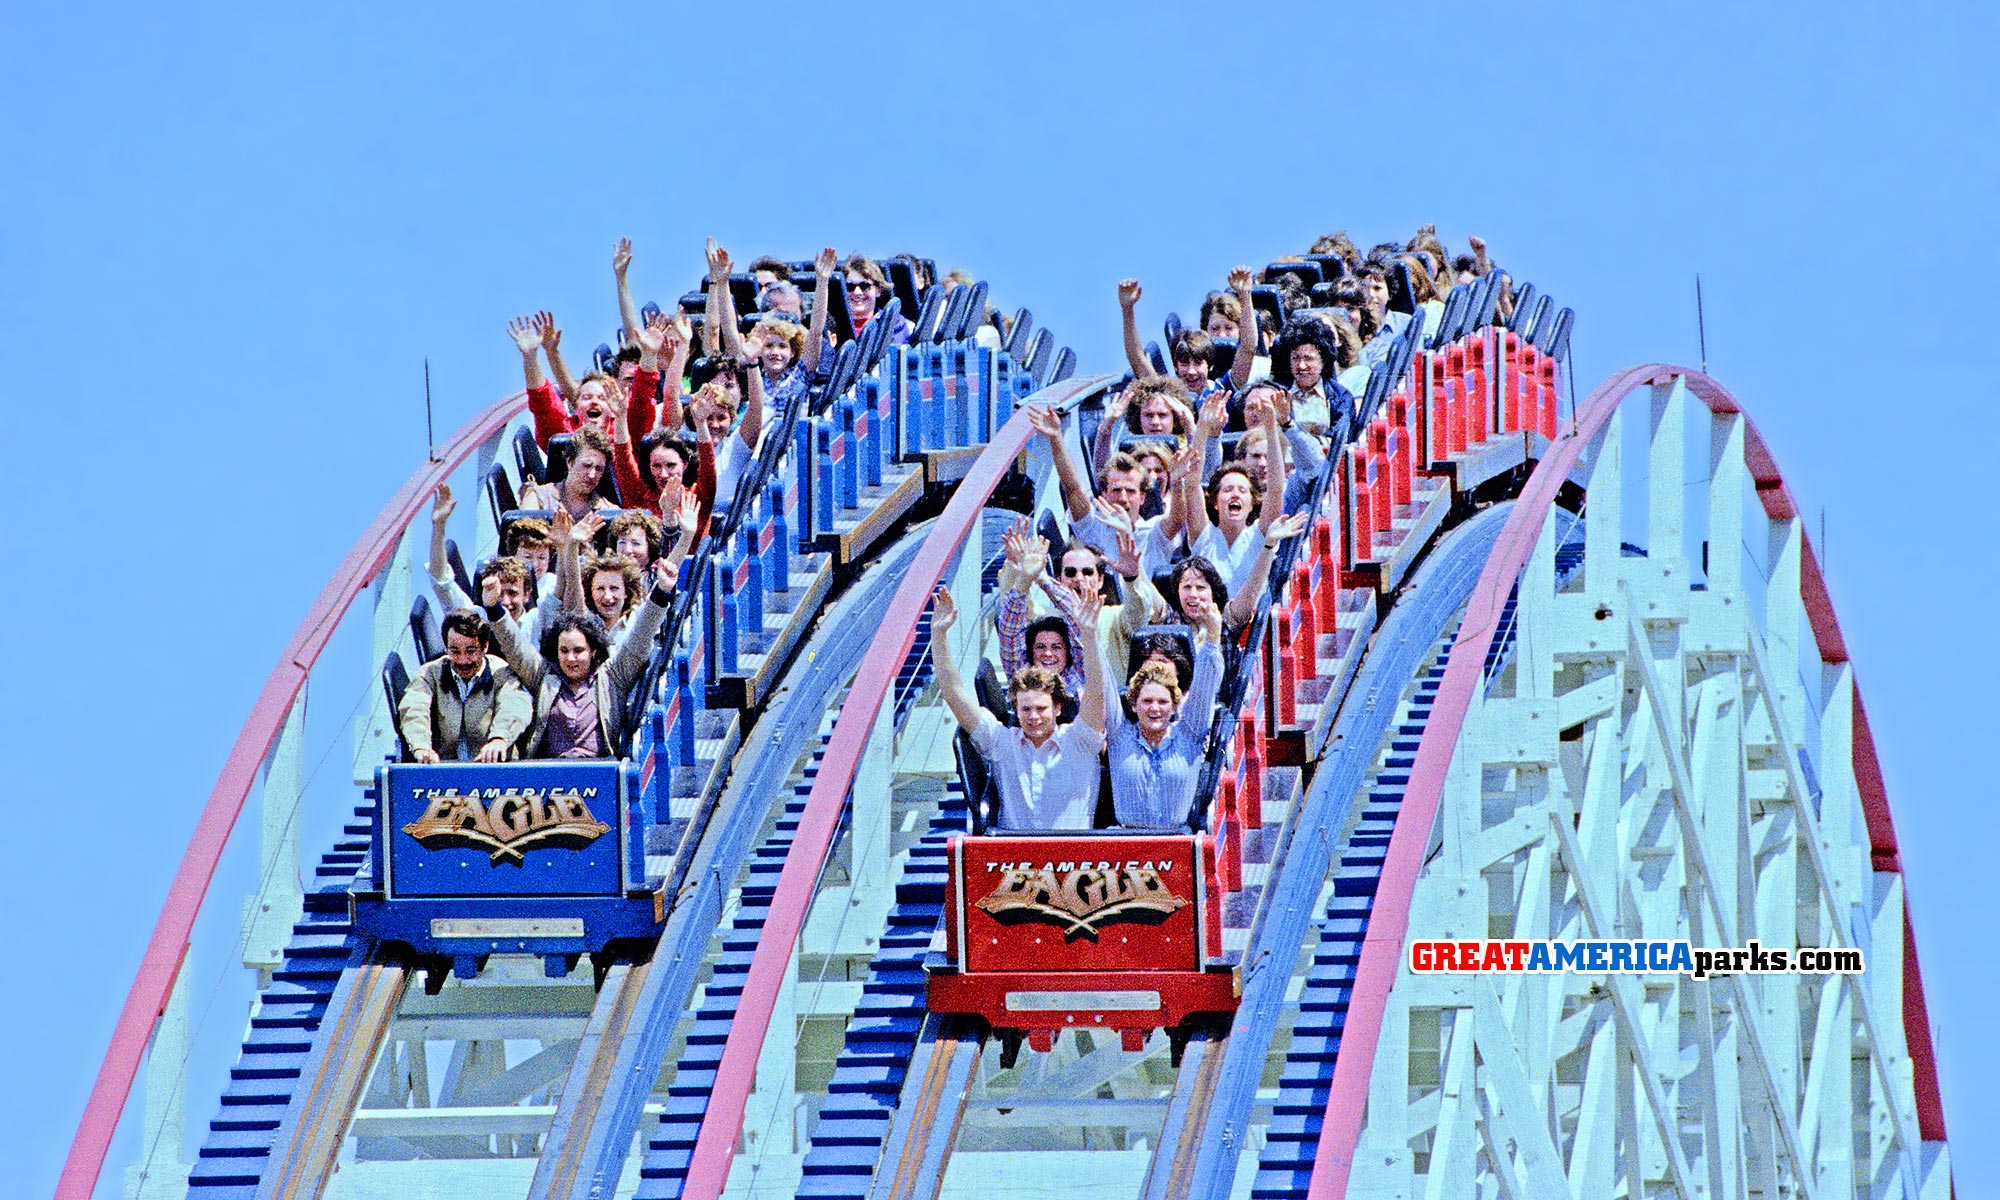 American Eagle blue and red trains crest the lift hill.